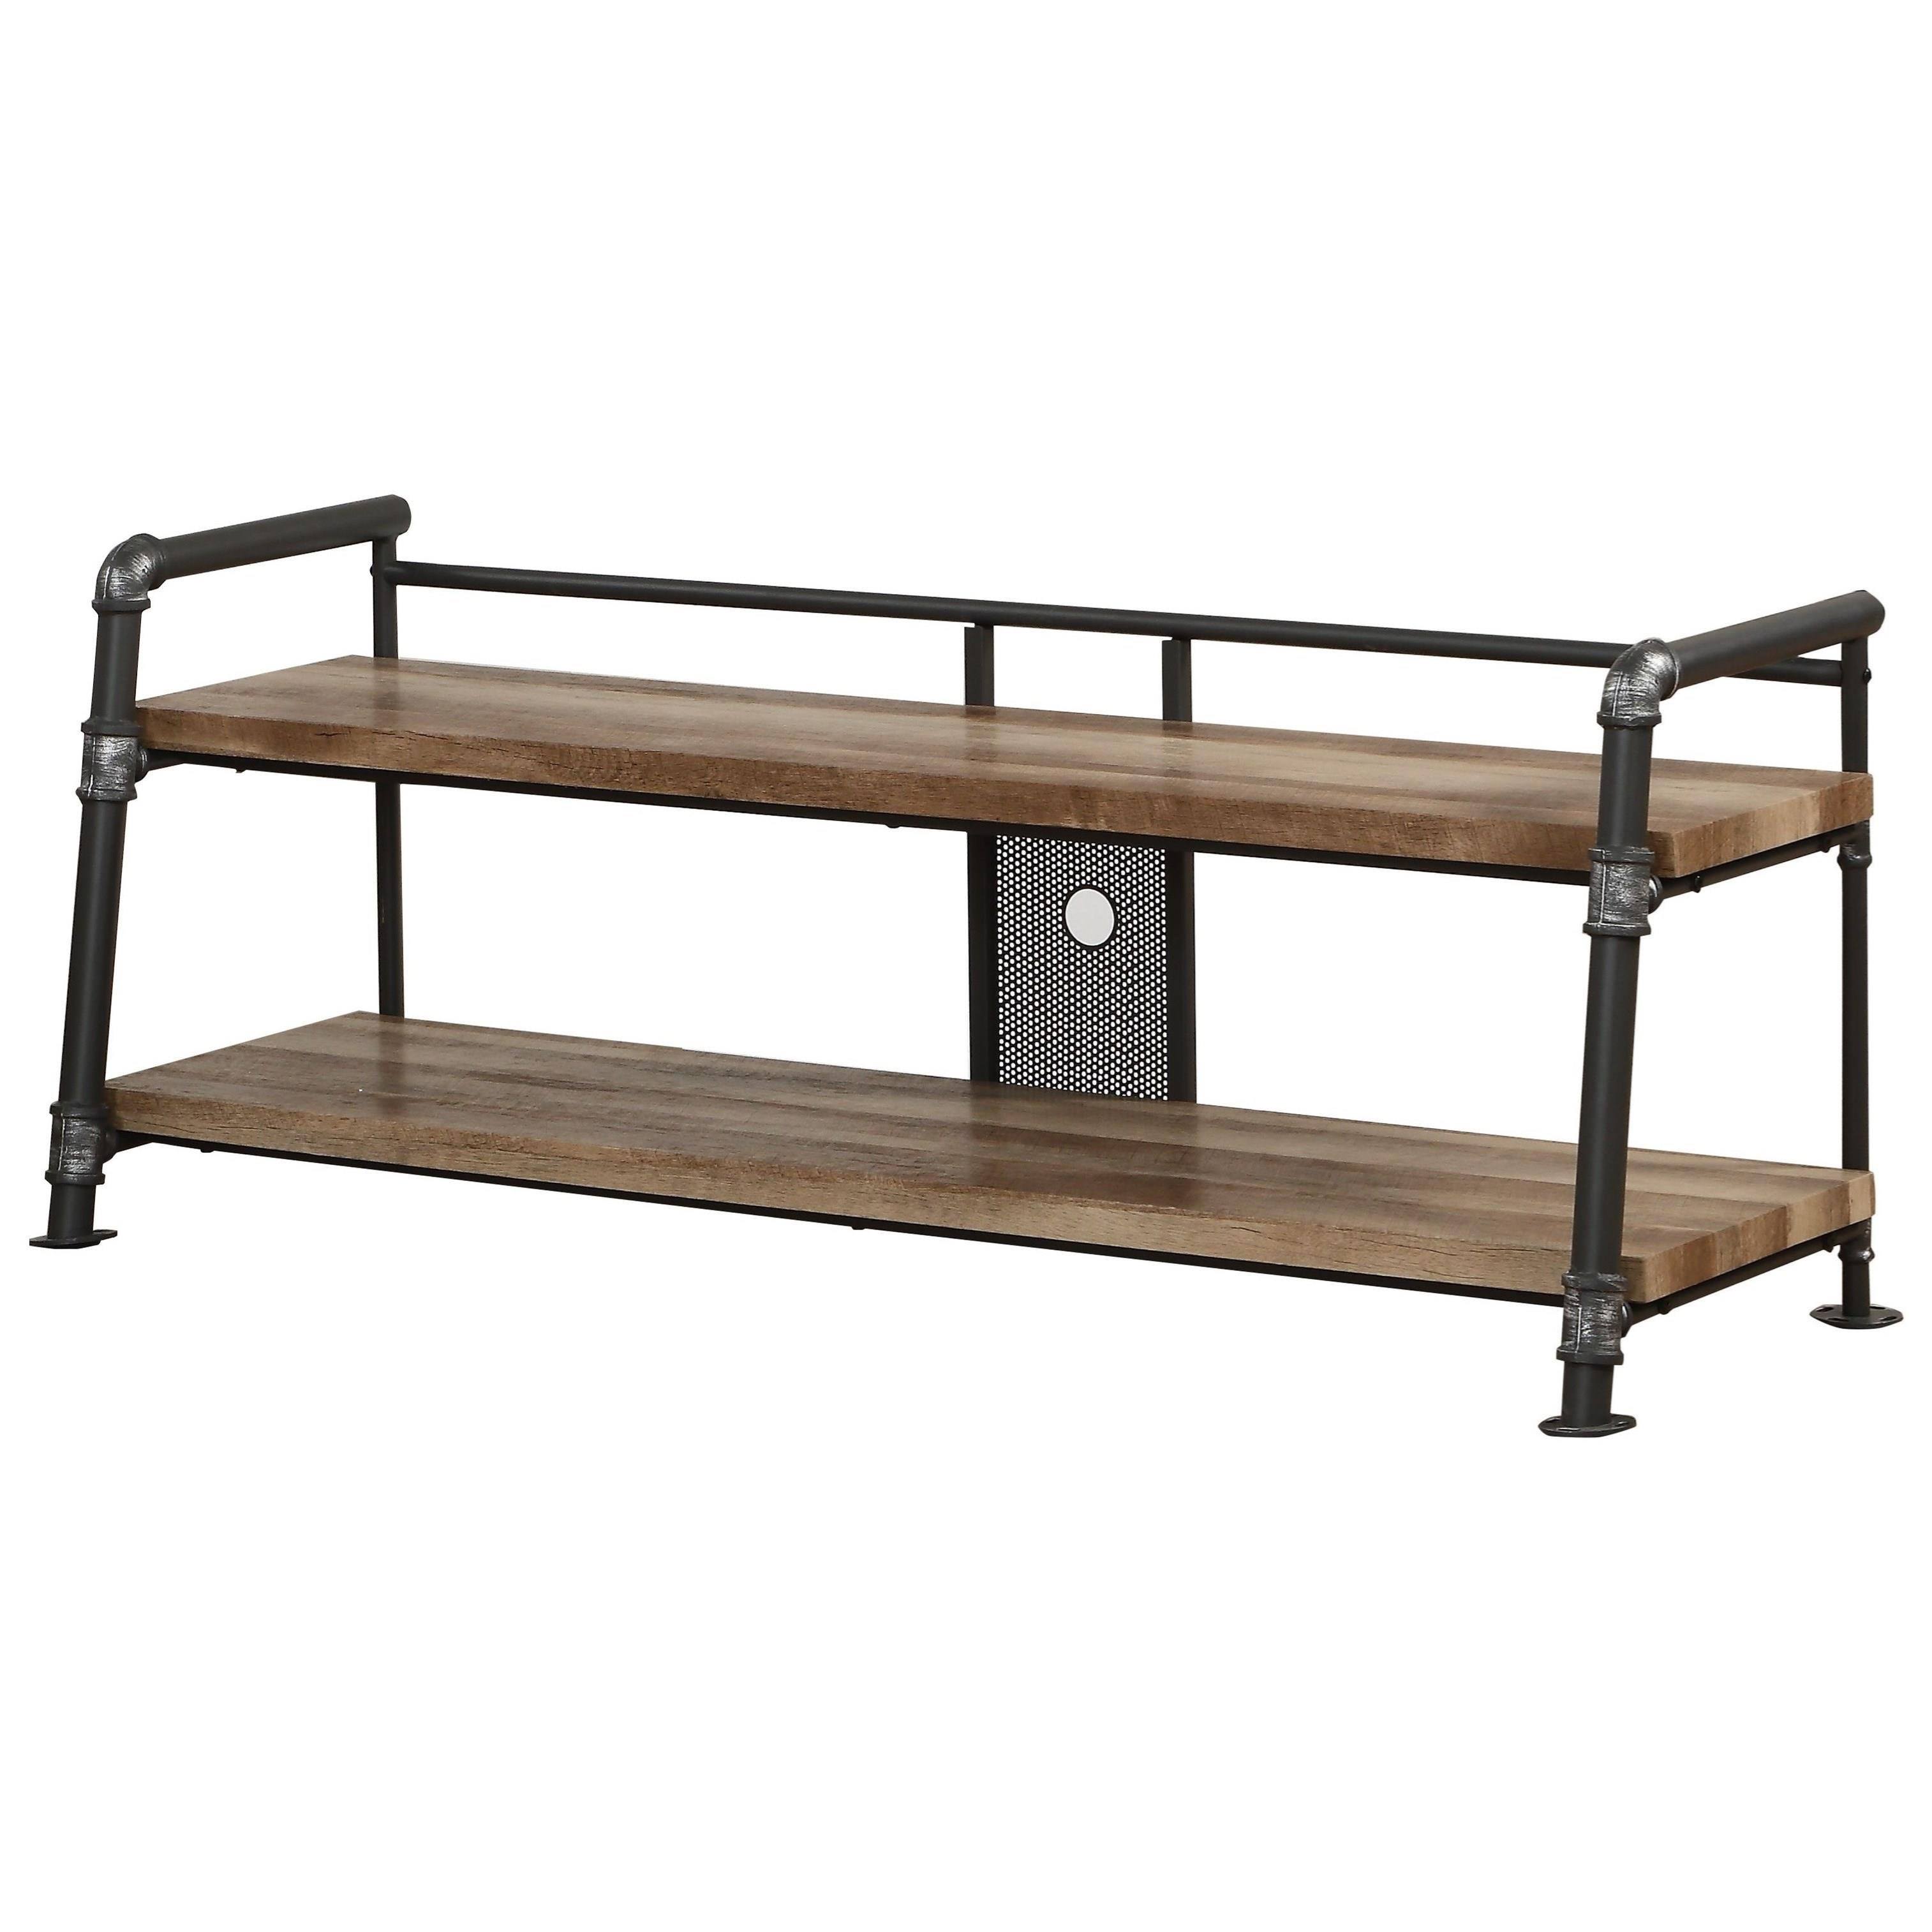 Caitlin (II) TV Stand by Acme Furniture at Carolina Direct